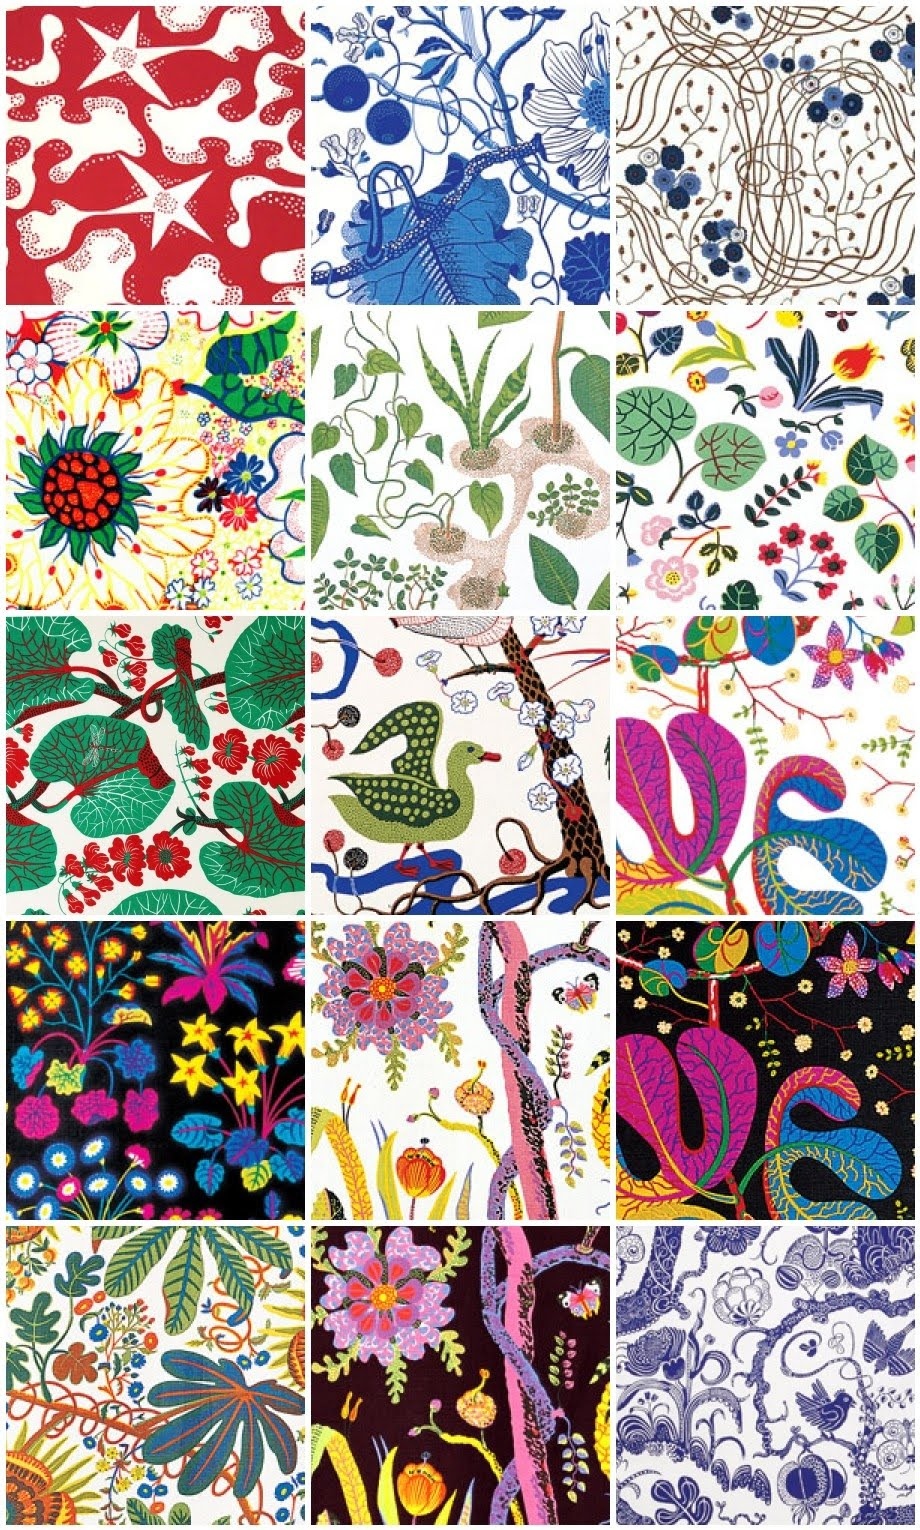 Best Day One Josef Frank Dcwdesign Blog This Month